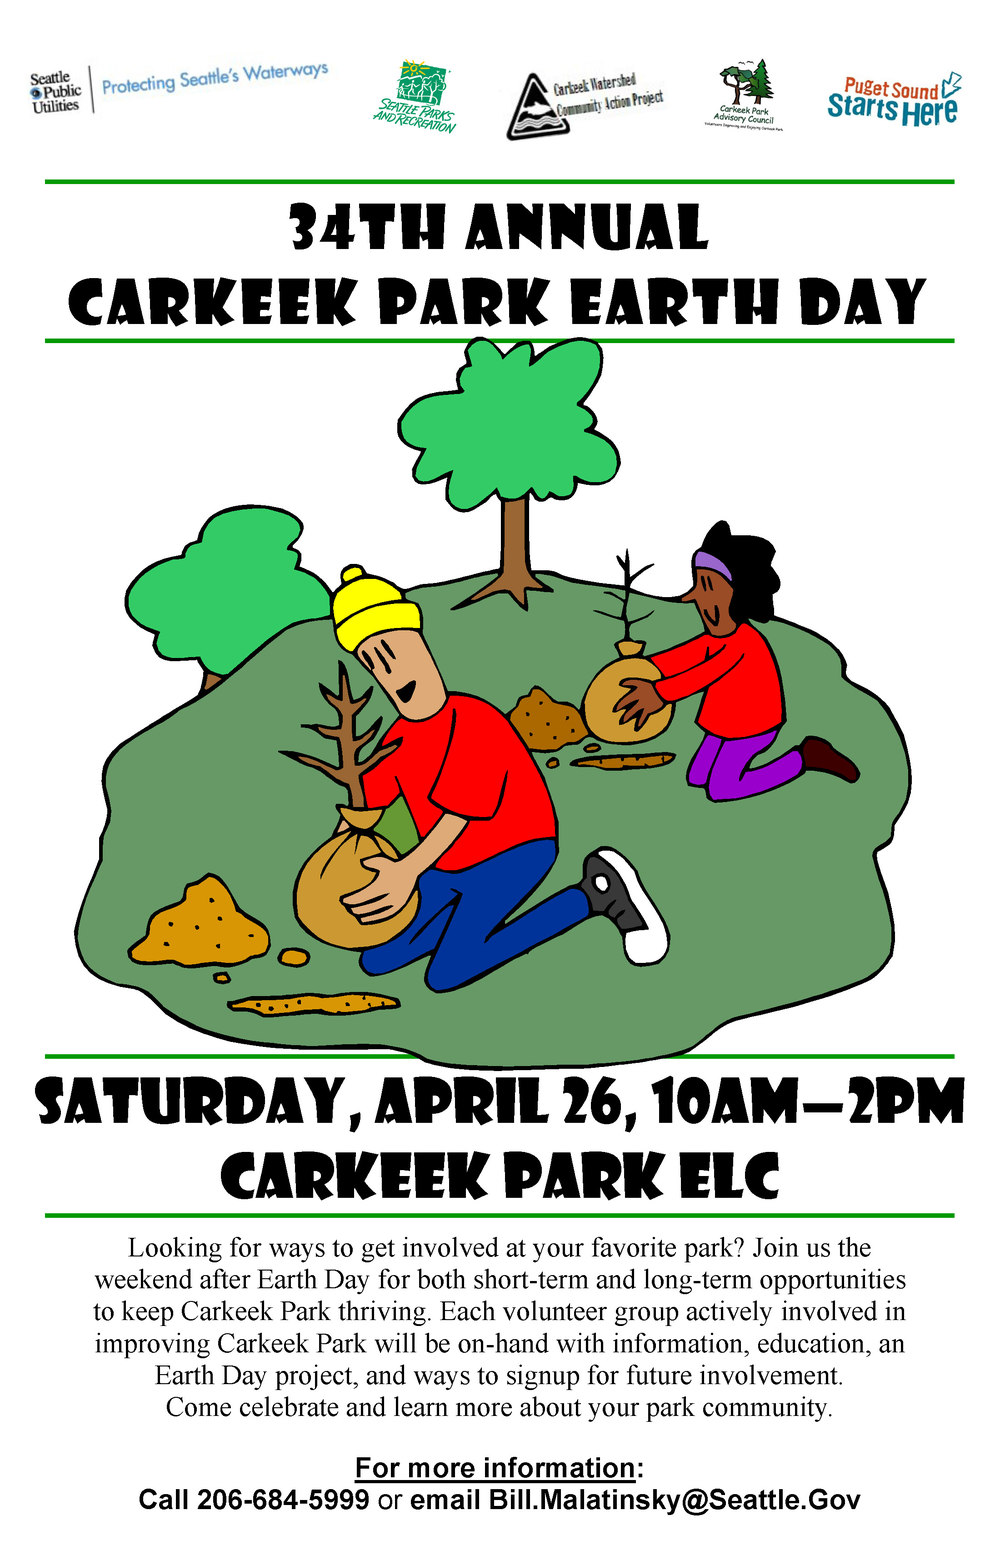 Carkeek Park Earth Day 2014 11x17 poster.jpg